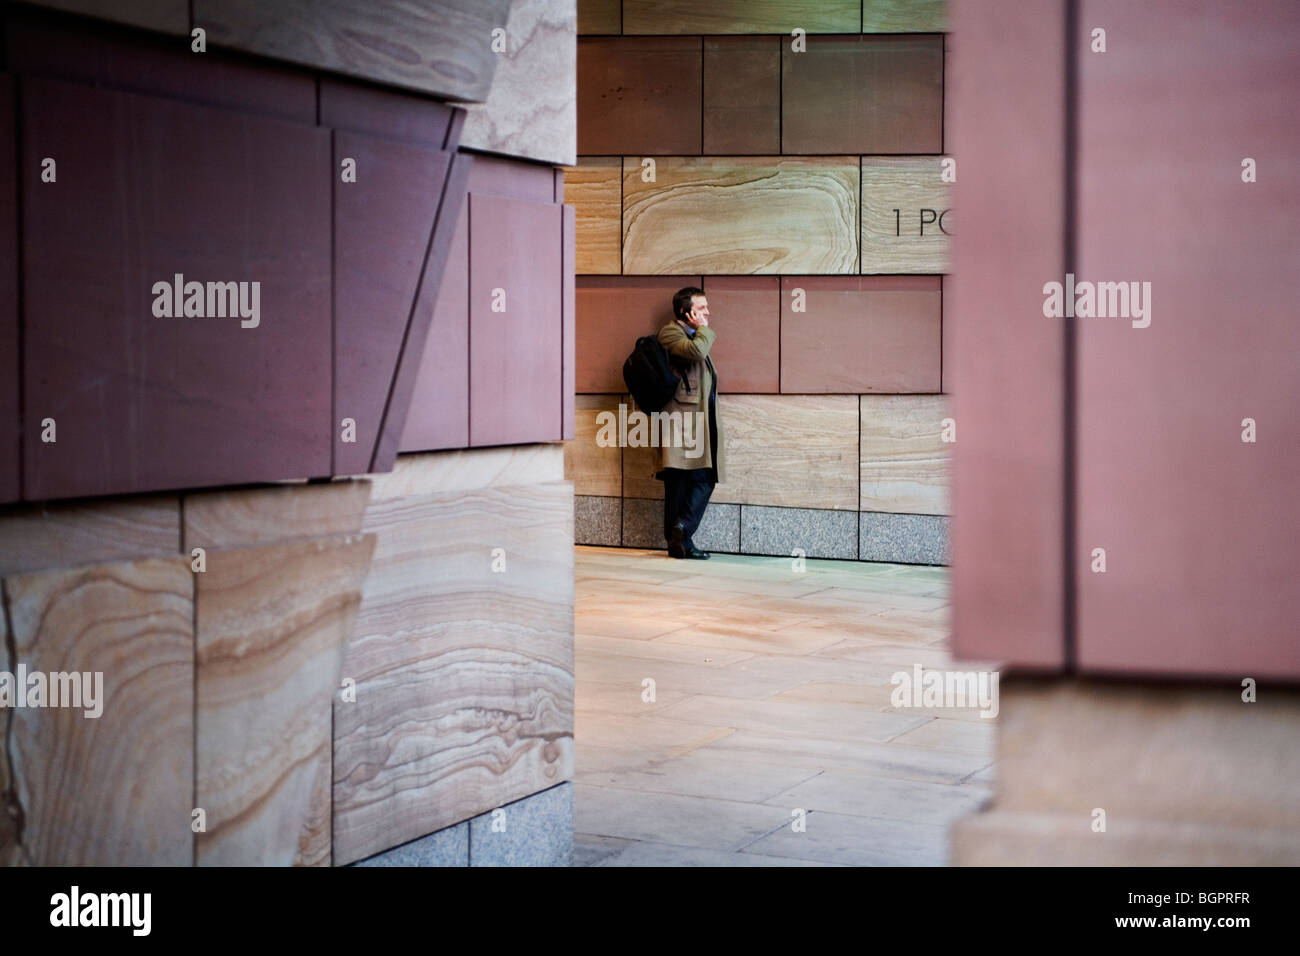 Man on the phone at Number 1 Poultry, London, England, Britain, UK - Stock Image